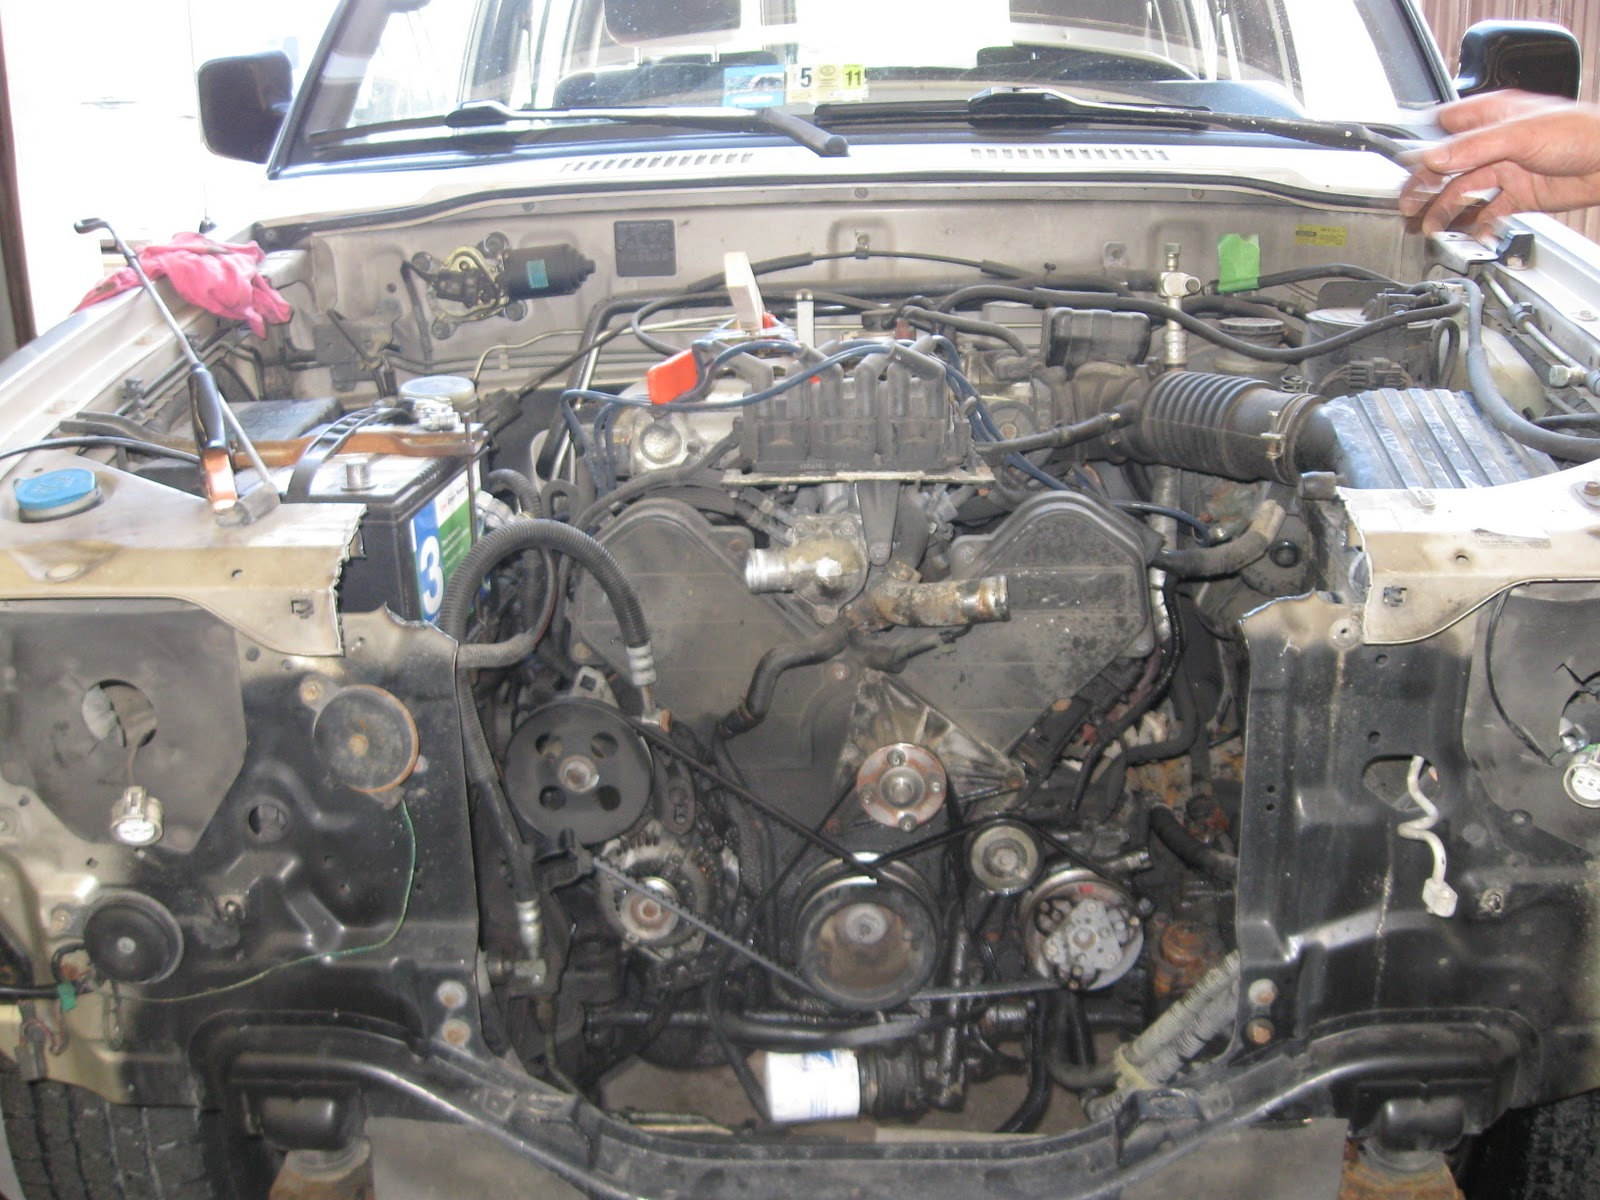 isuzu trooper alternator wiring diagram images isuzu bighorn 4jg2 wiring diagram isuzu bighorn 4jg2 wiring diagram